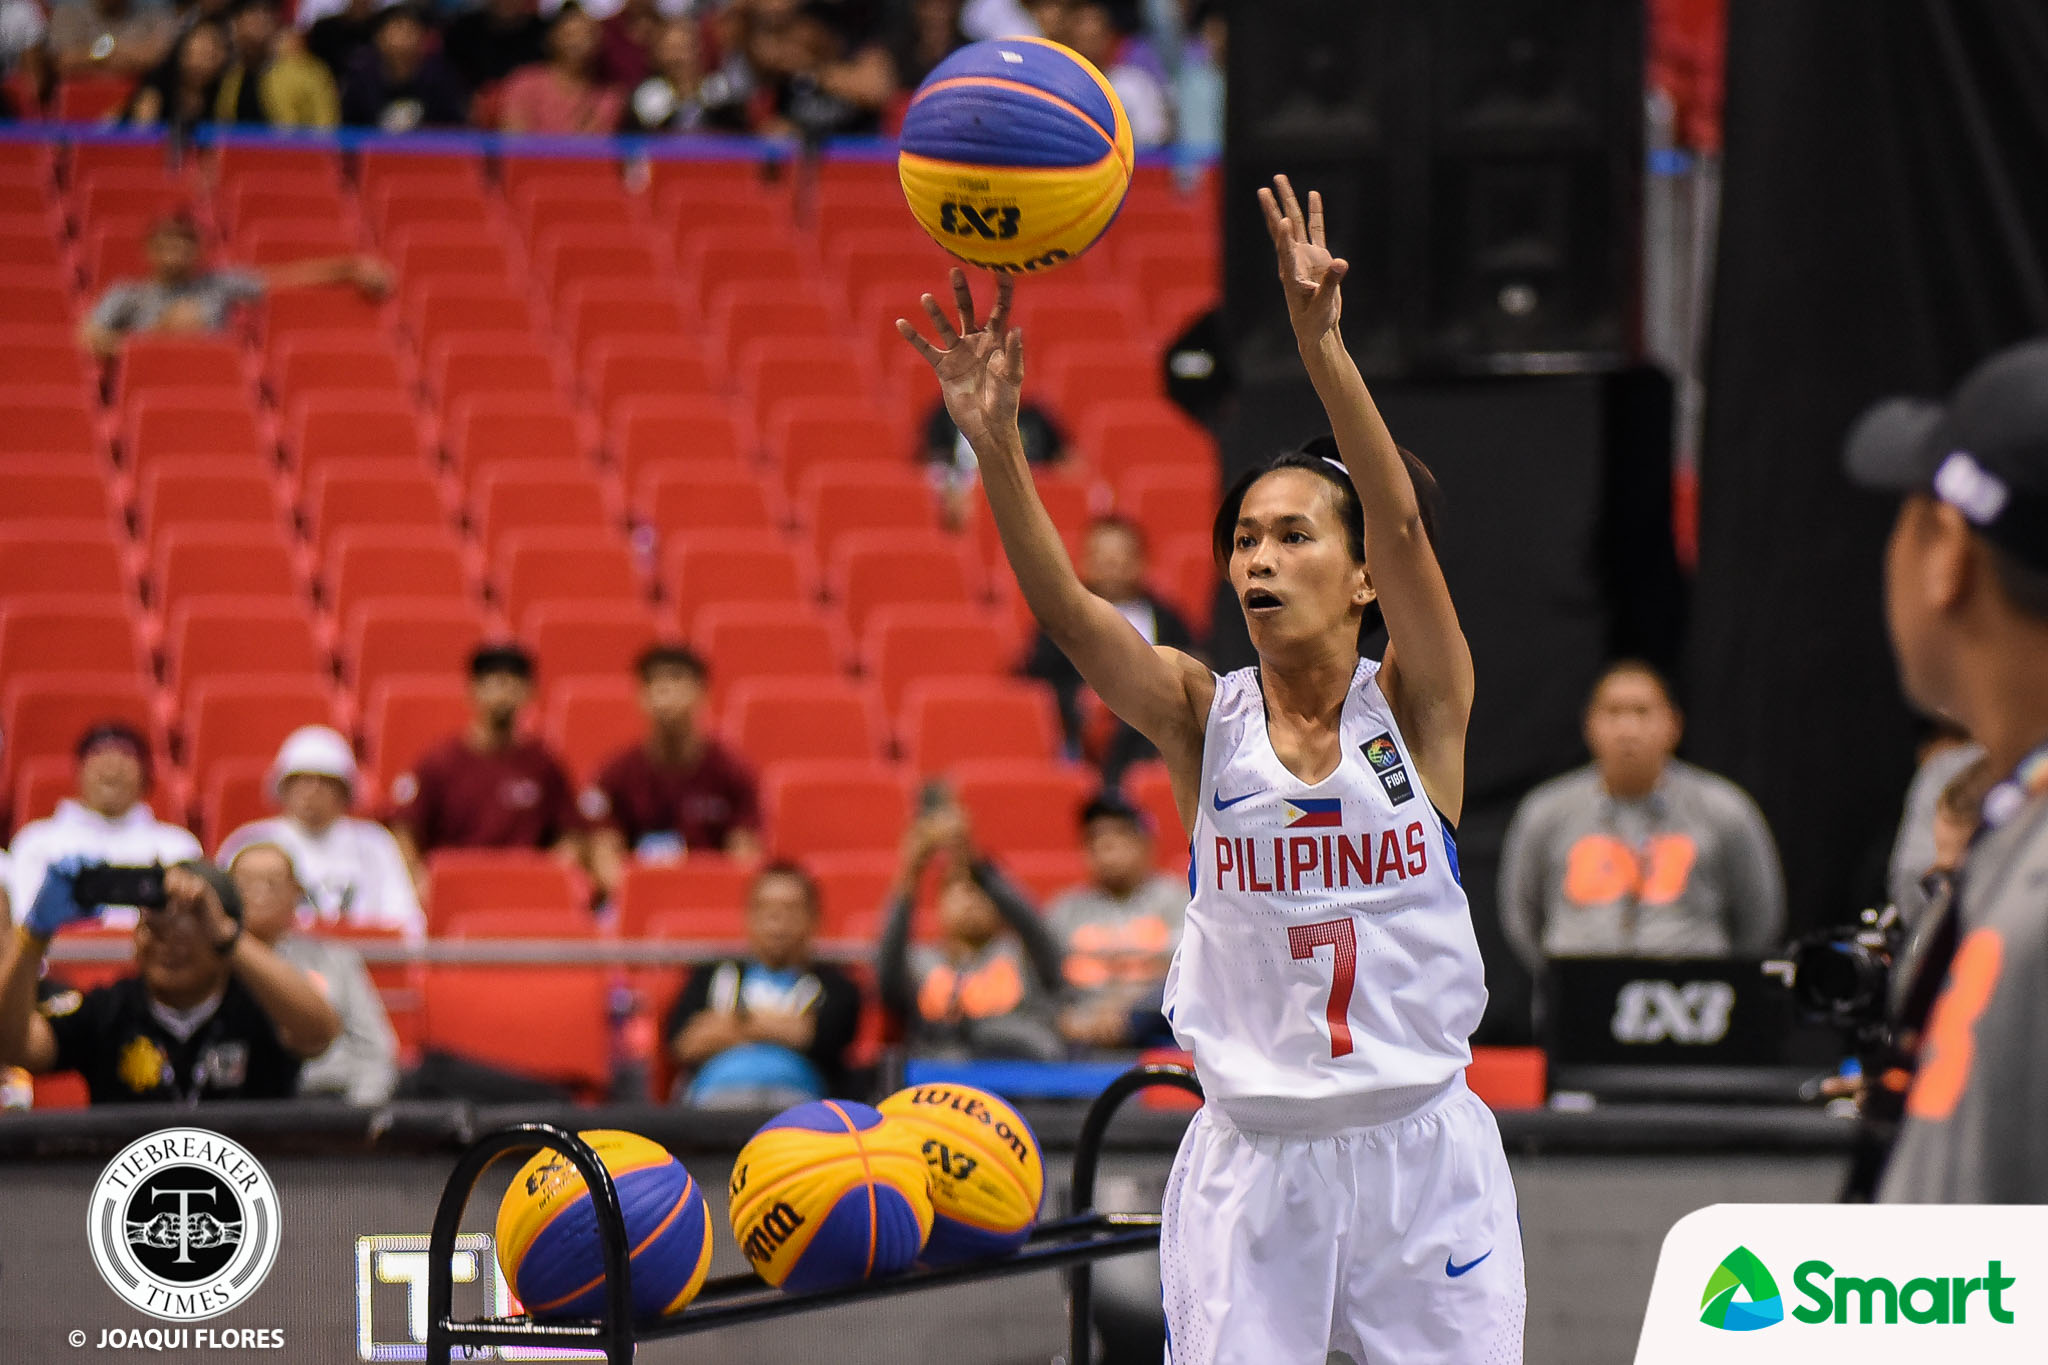 Tiebreaker Times Janine Pontejos overcomes nerves to win Philippines' first-ever 3x3 World Cup gold 2018 FIBA 3X3 World Cup 3x3 Basketball News Perlas Pilipinas  Janine Pontejos 2018 FIBA 3X3 World Cup Side Events